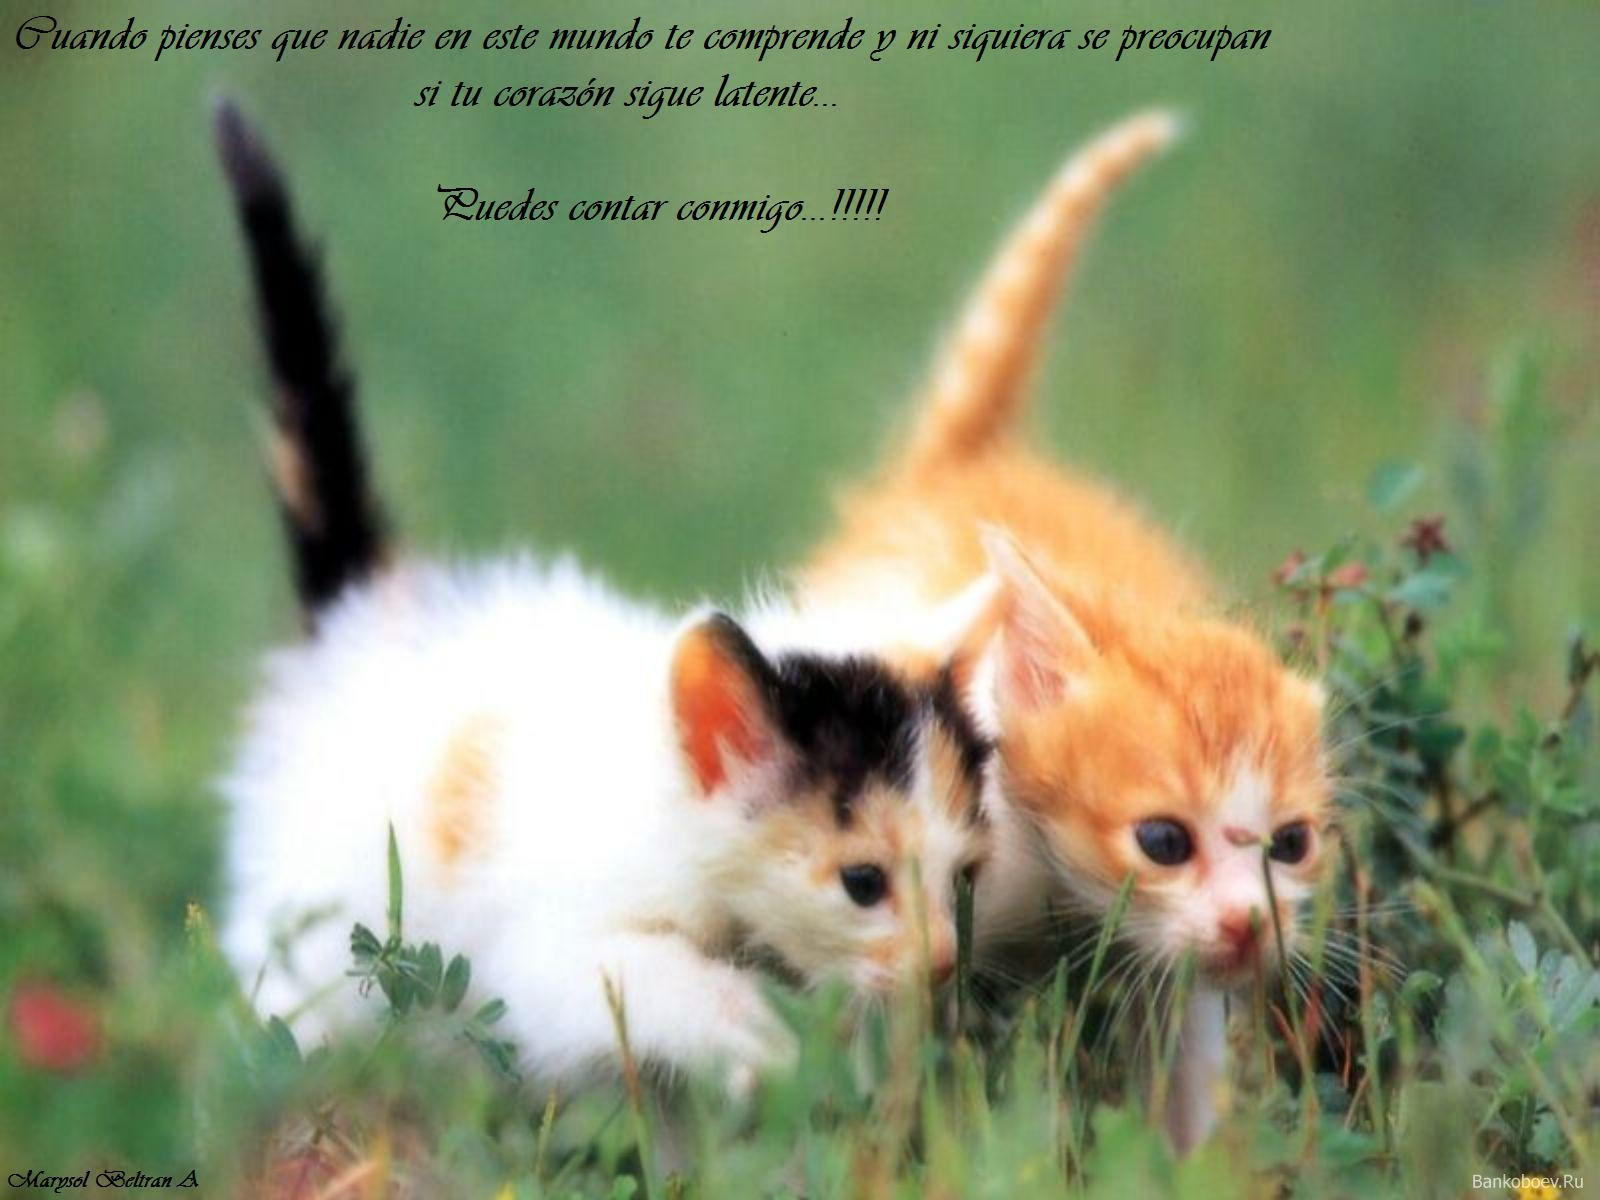 Fotos De Gatos Con Frases Wallpapers | Real Madrid Wallpapers